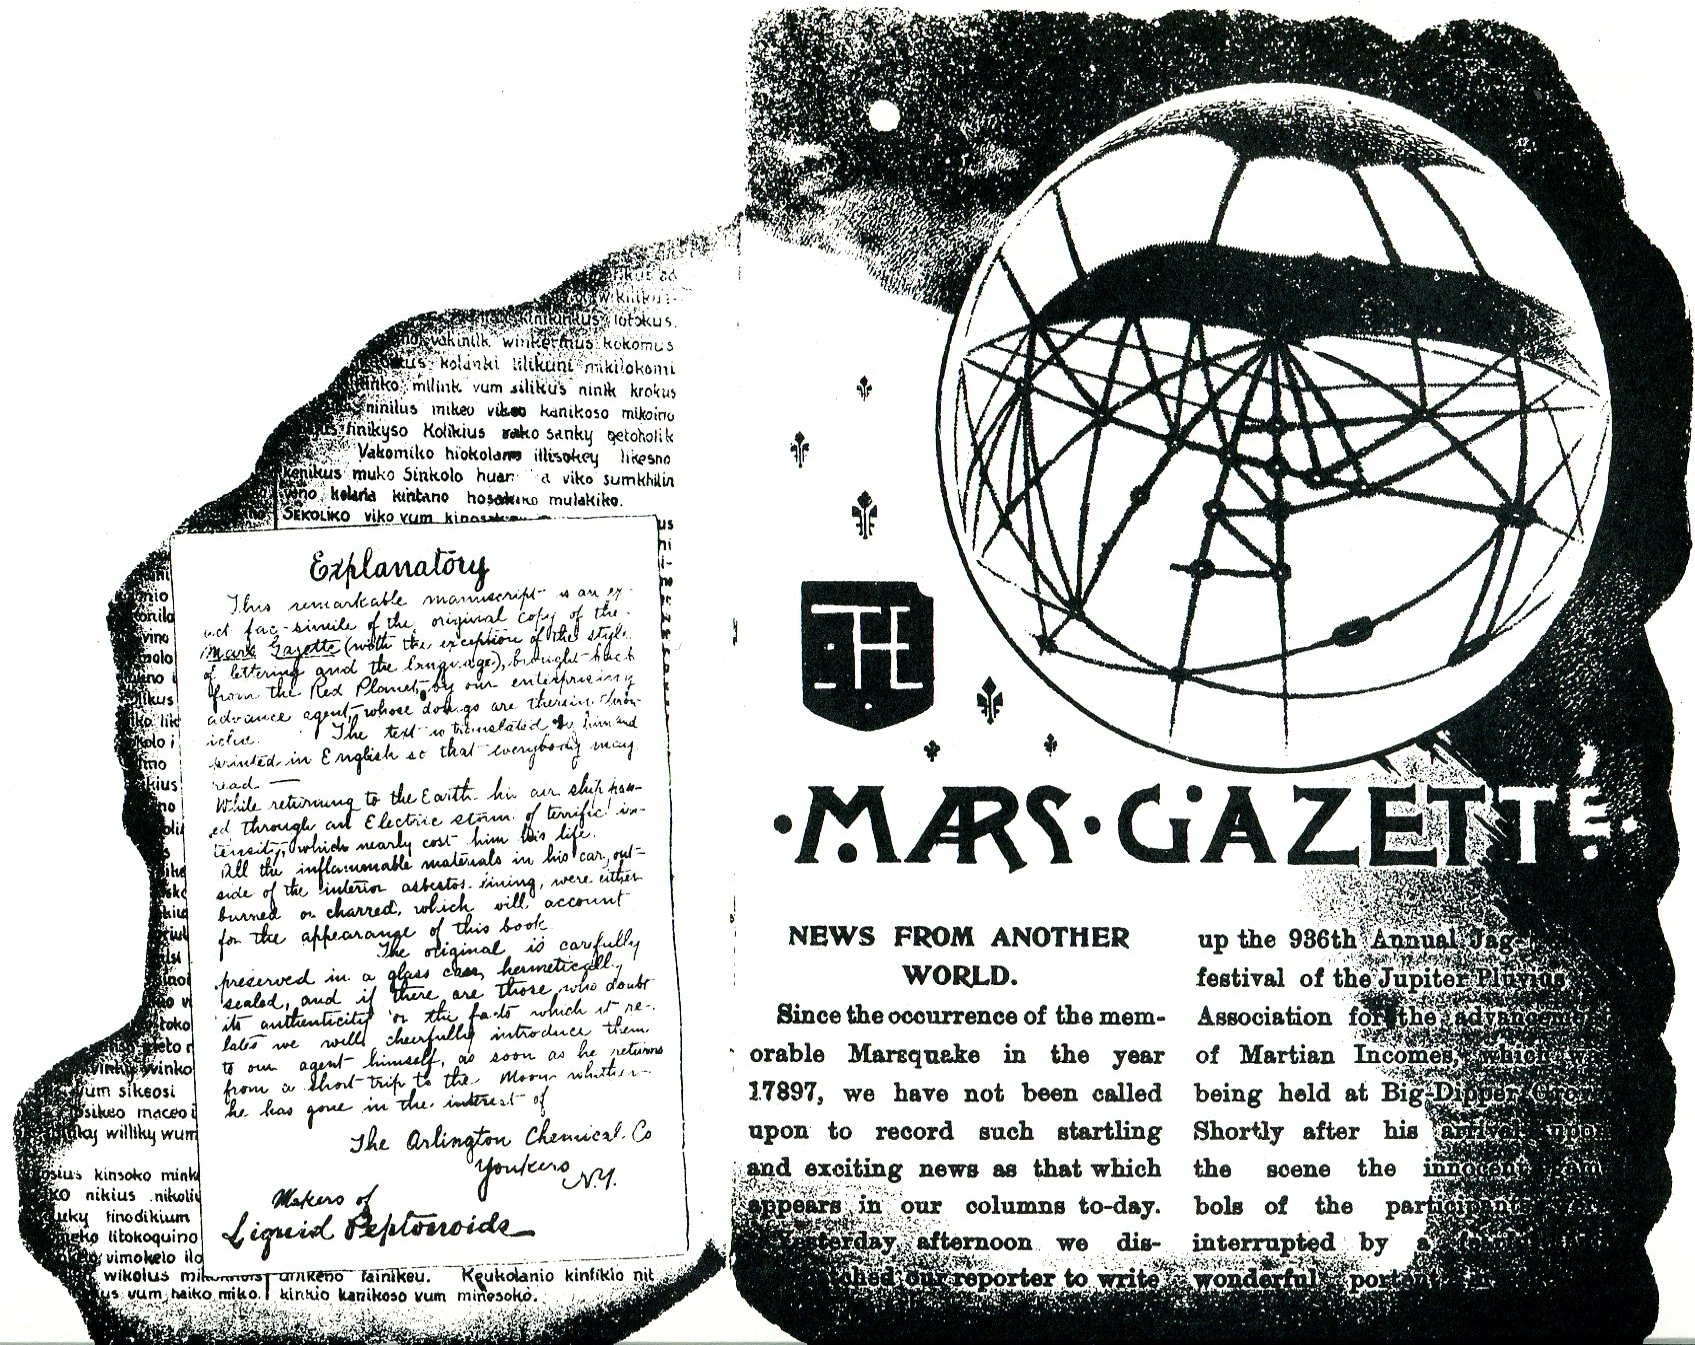 The Mars Gazette 1975